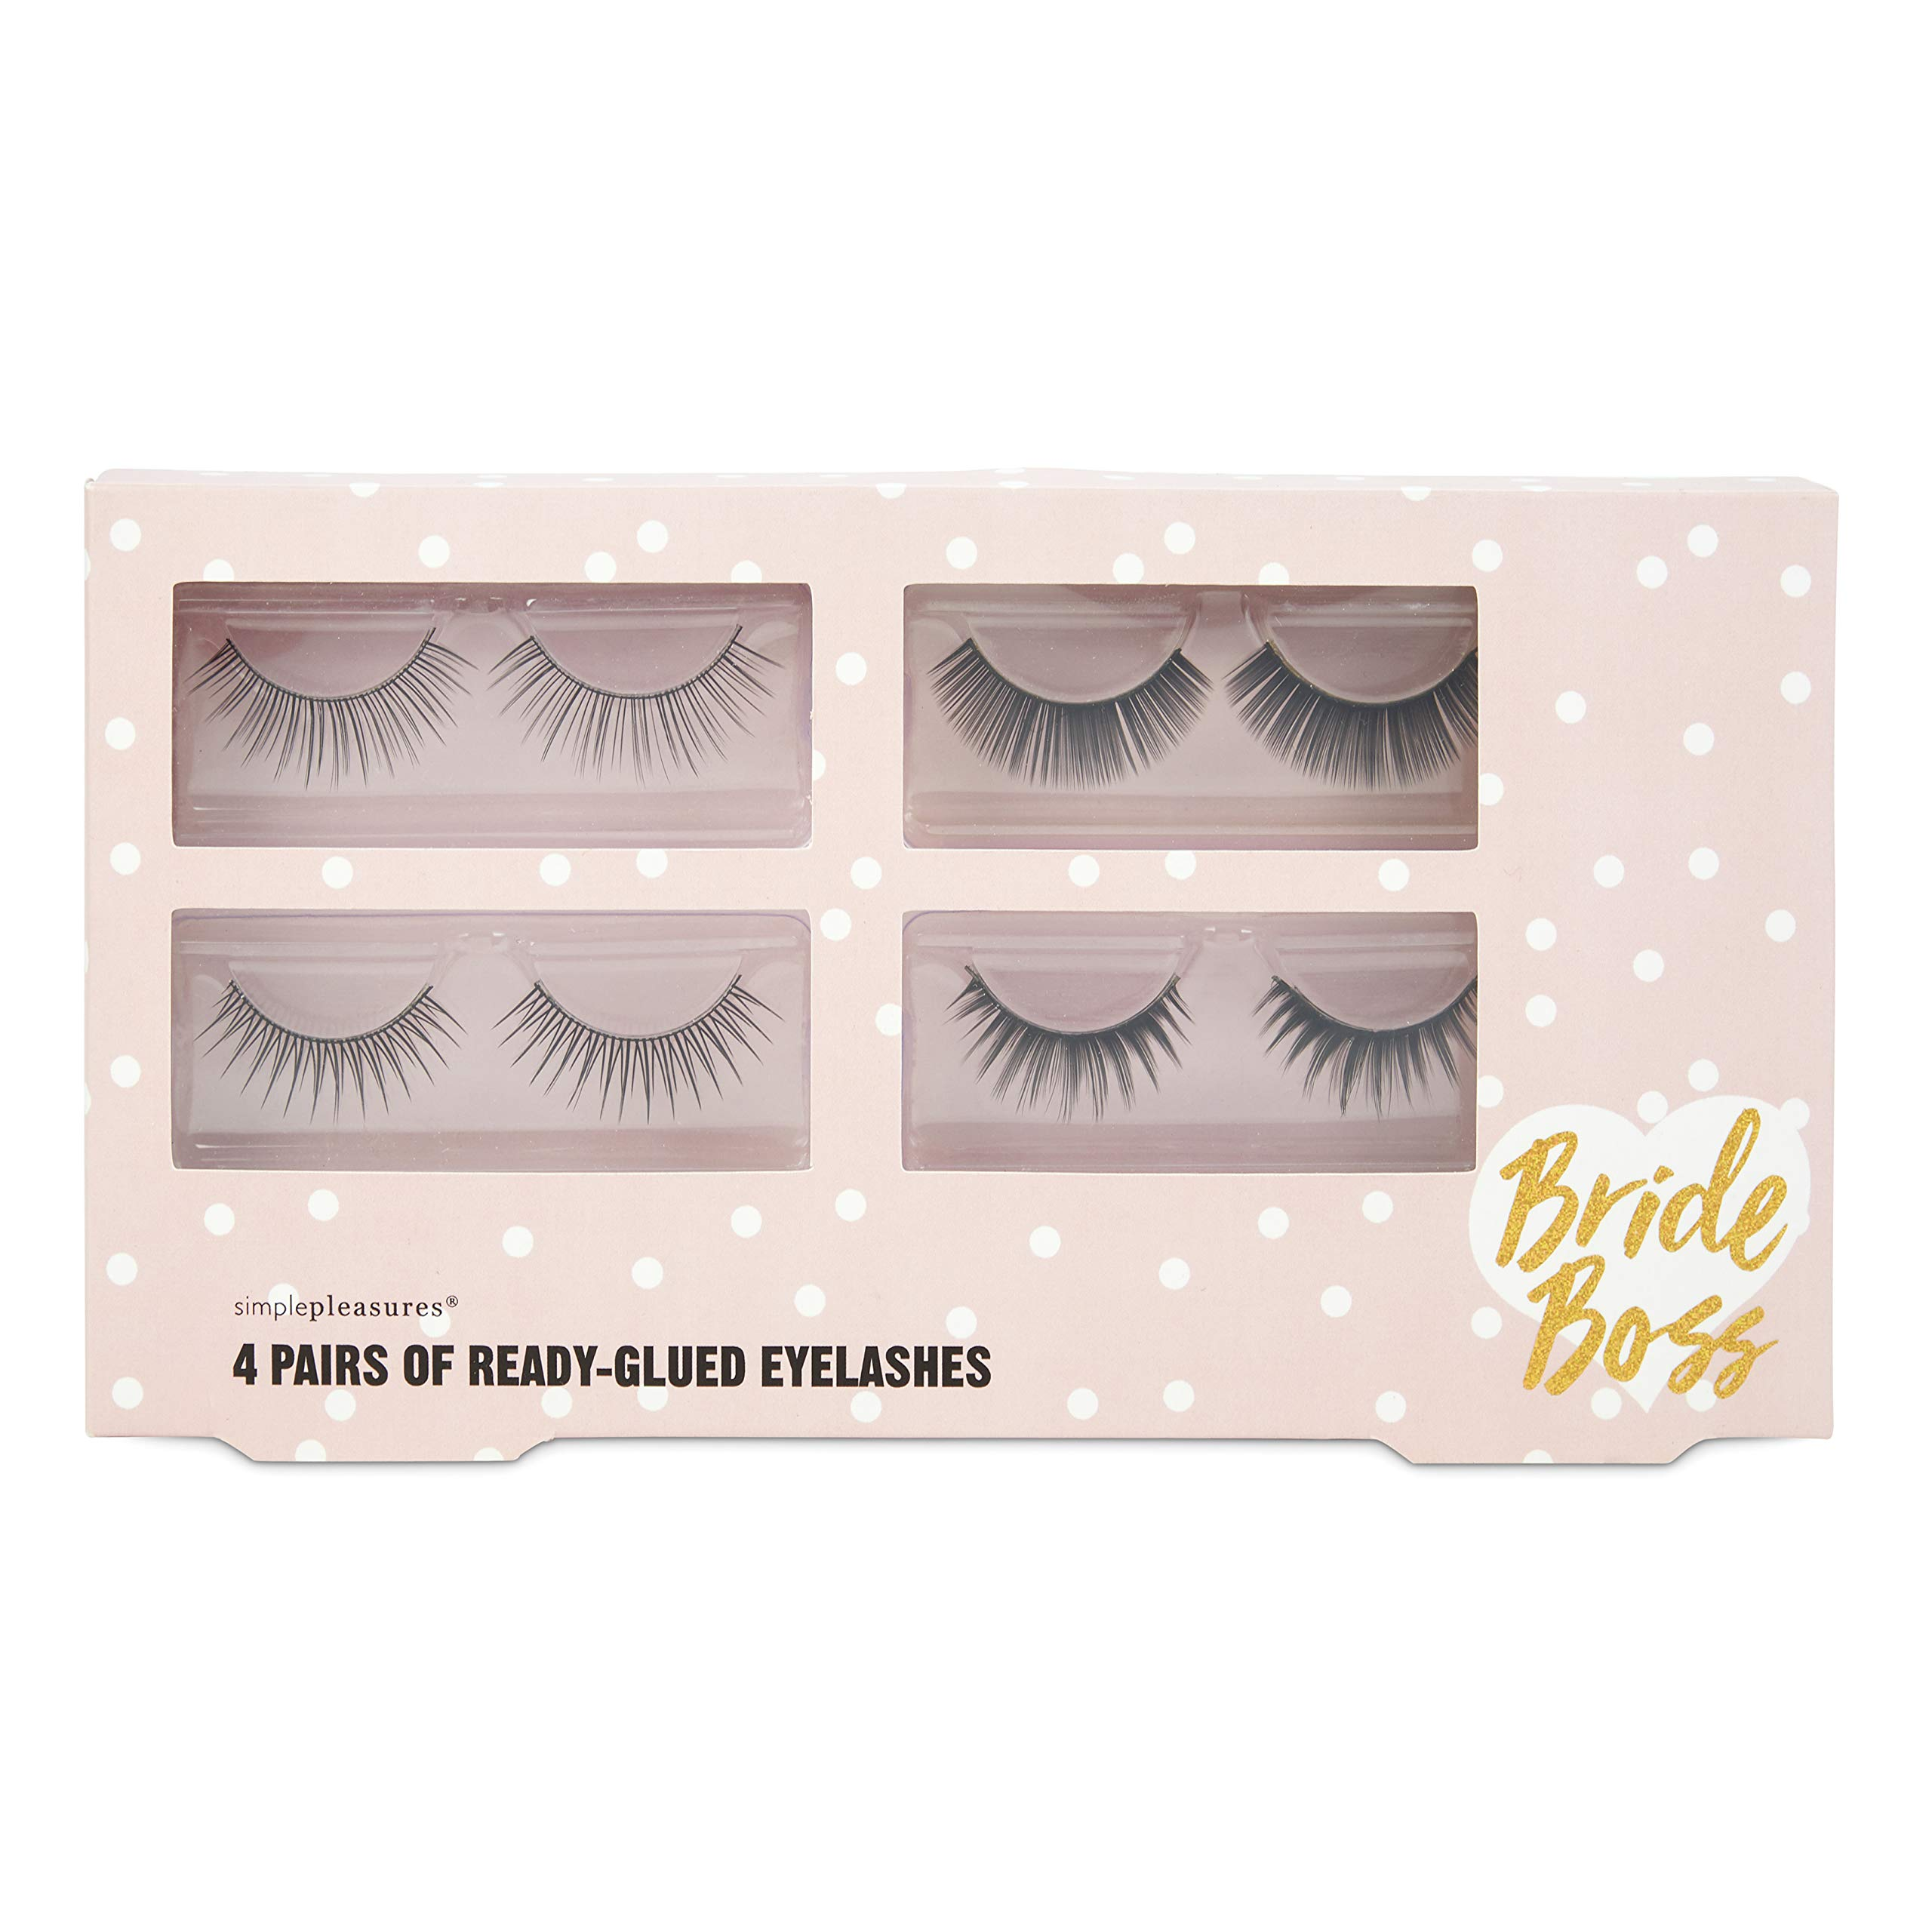 """Charming Charlie - Charming Charlie 4 Pairs Of Ready Glued Eyelashes – 4 Assorted Styles Of False Cosmetic """"Bride Boss"""" Lash Extensions"""